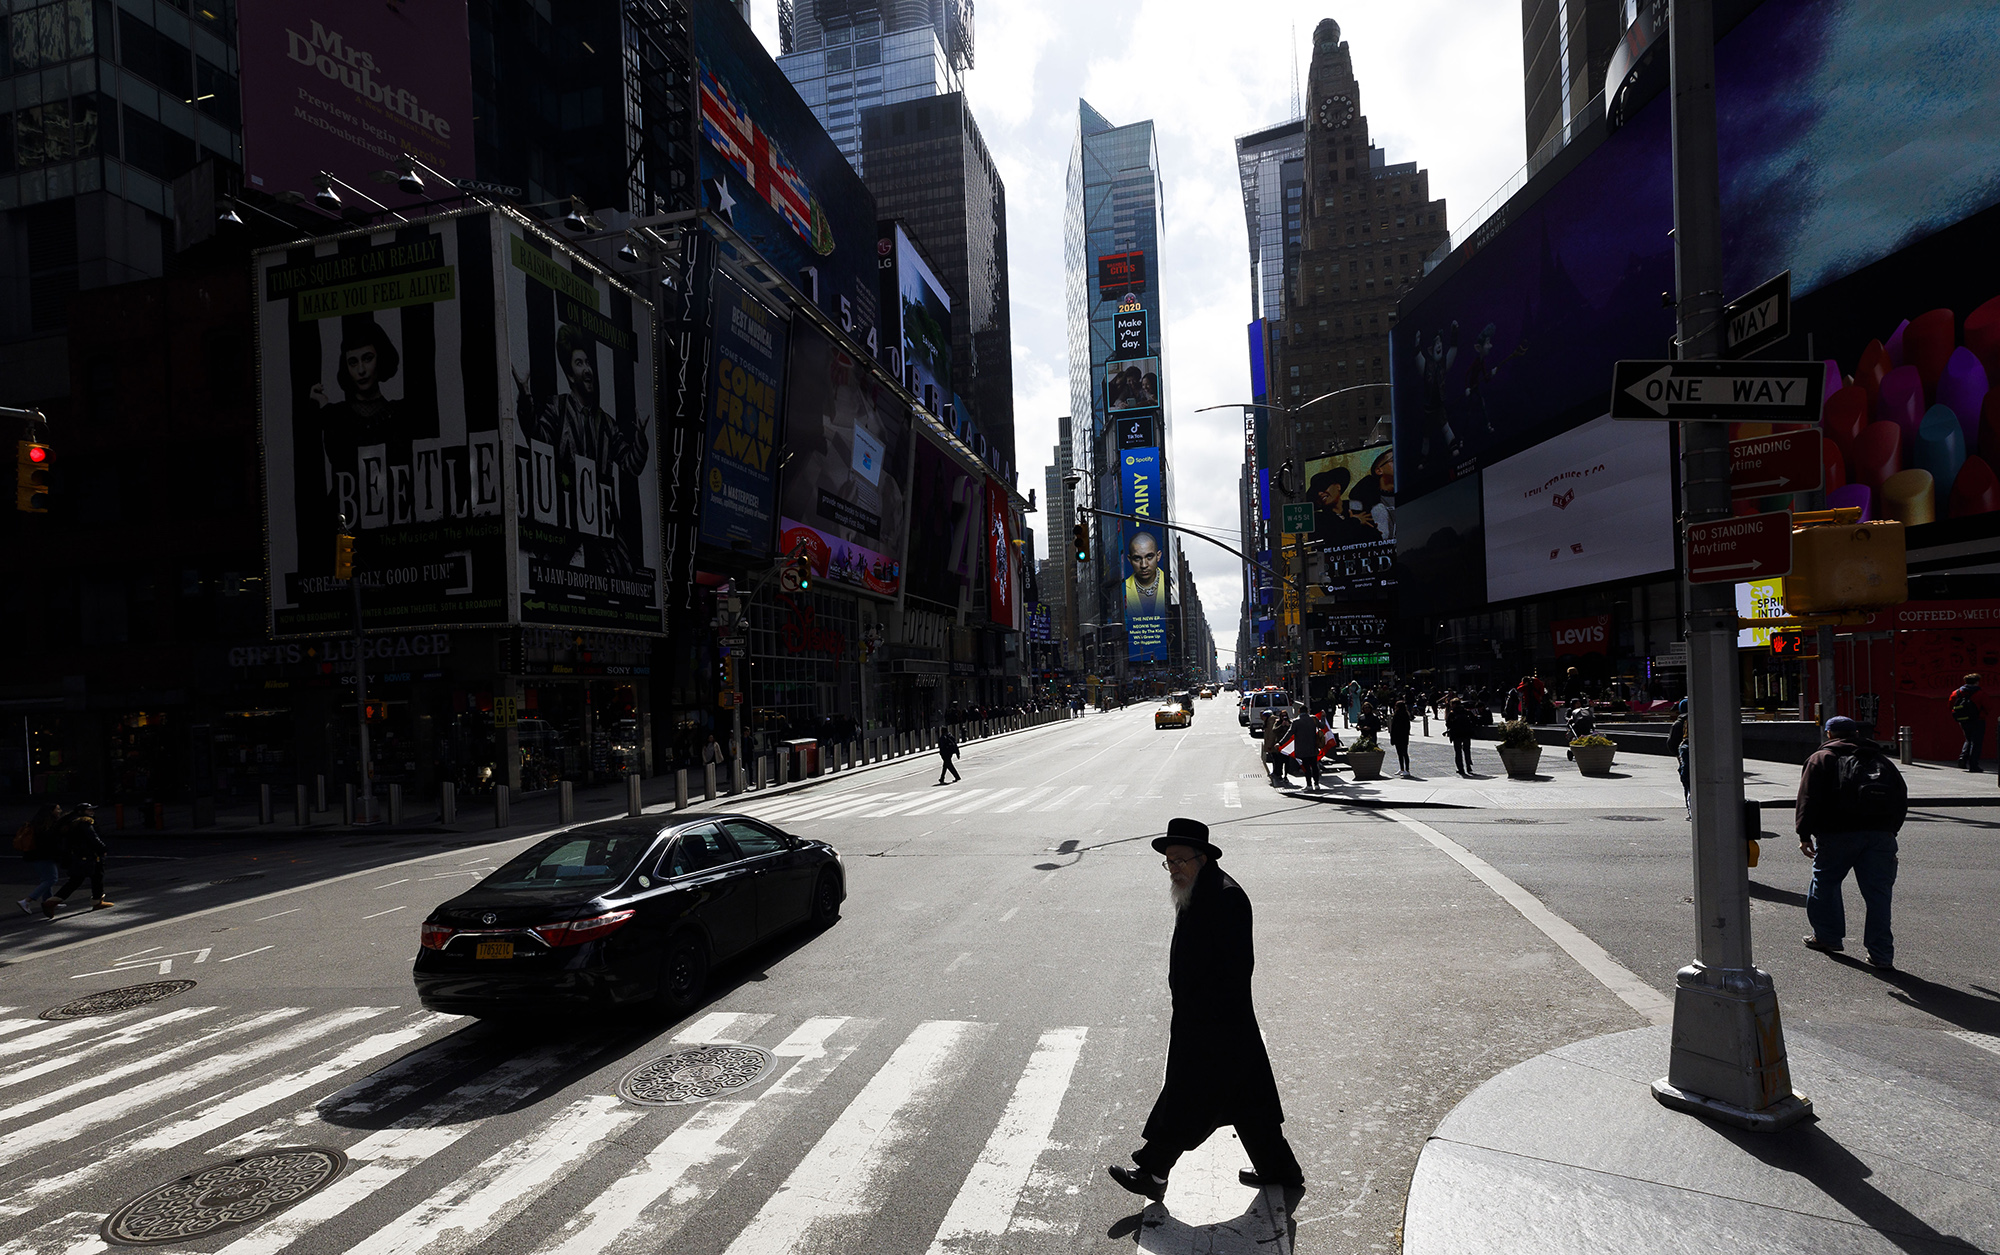 A person walks through a quiet Times Square in New York, New York, USA, 16 March 2020. New York, as with most cities around the United States and the world, are trying to mitigate the spread of the coronavirus and all restaurants and bars will be forced to close as of tonight. EPA-EFE/JUSTIN LANE